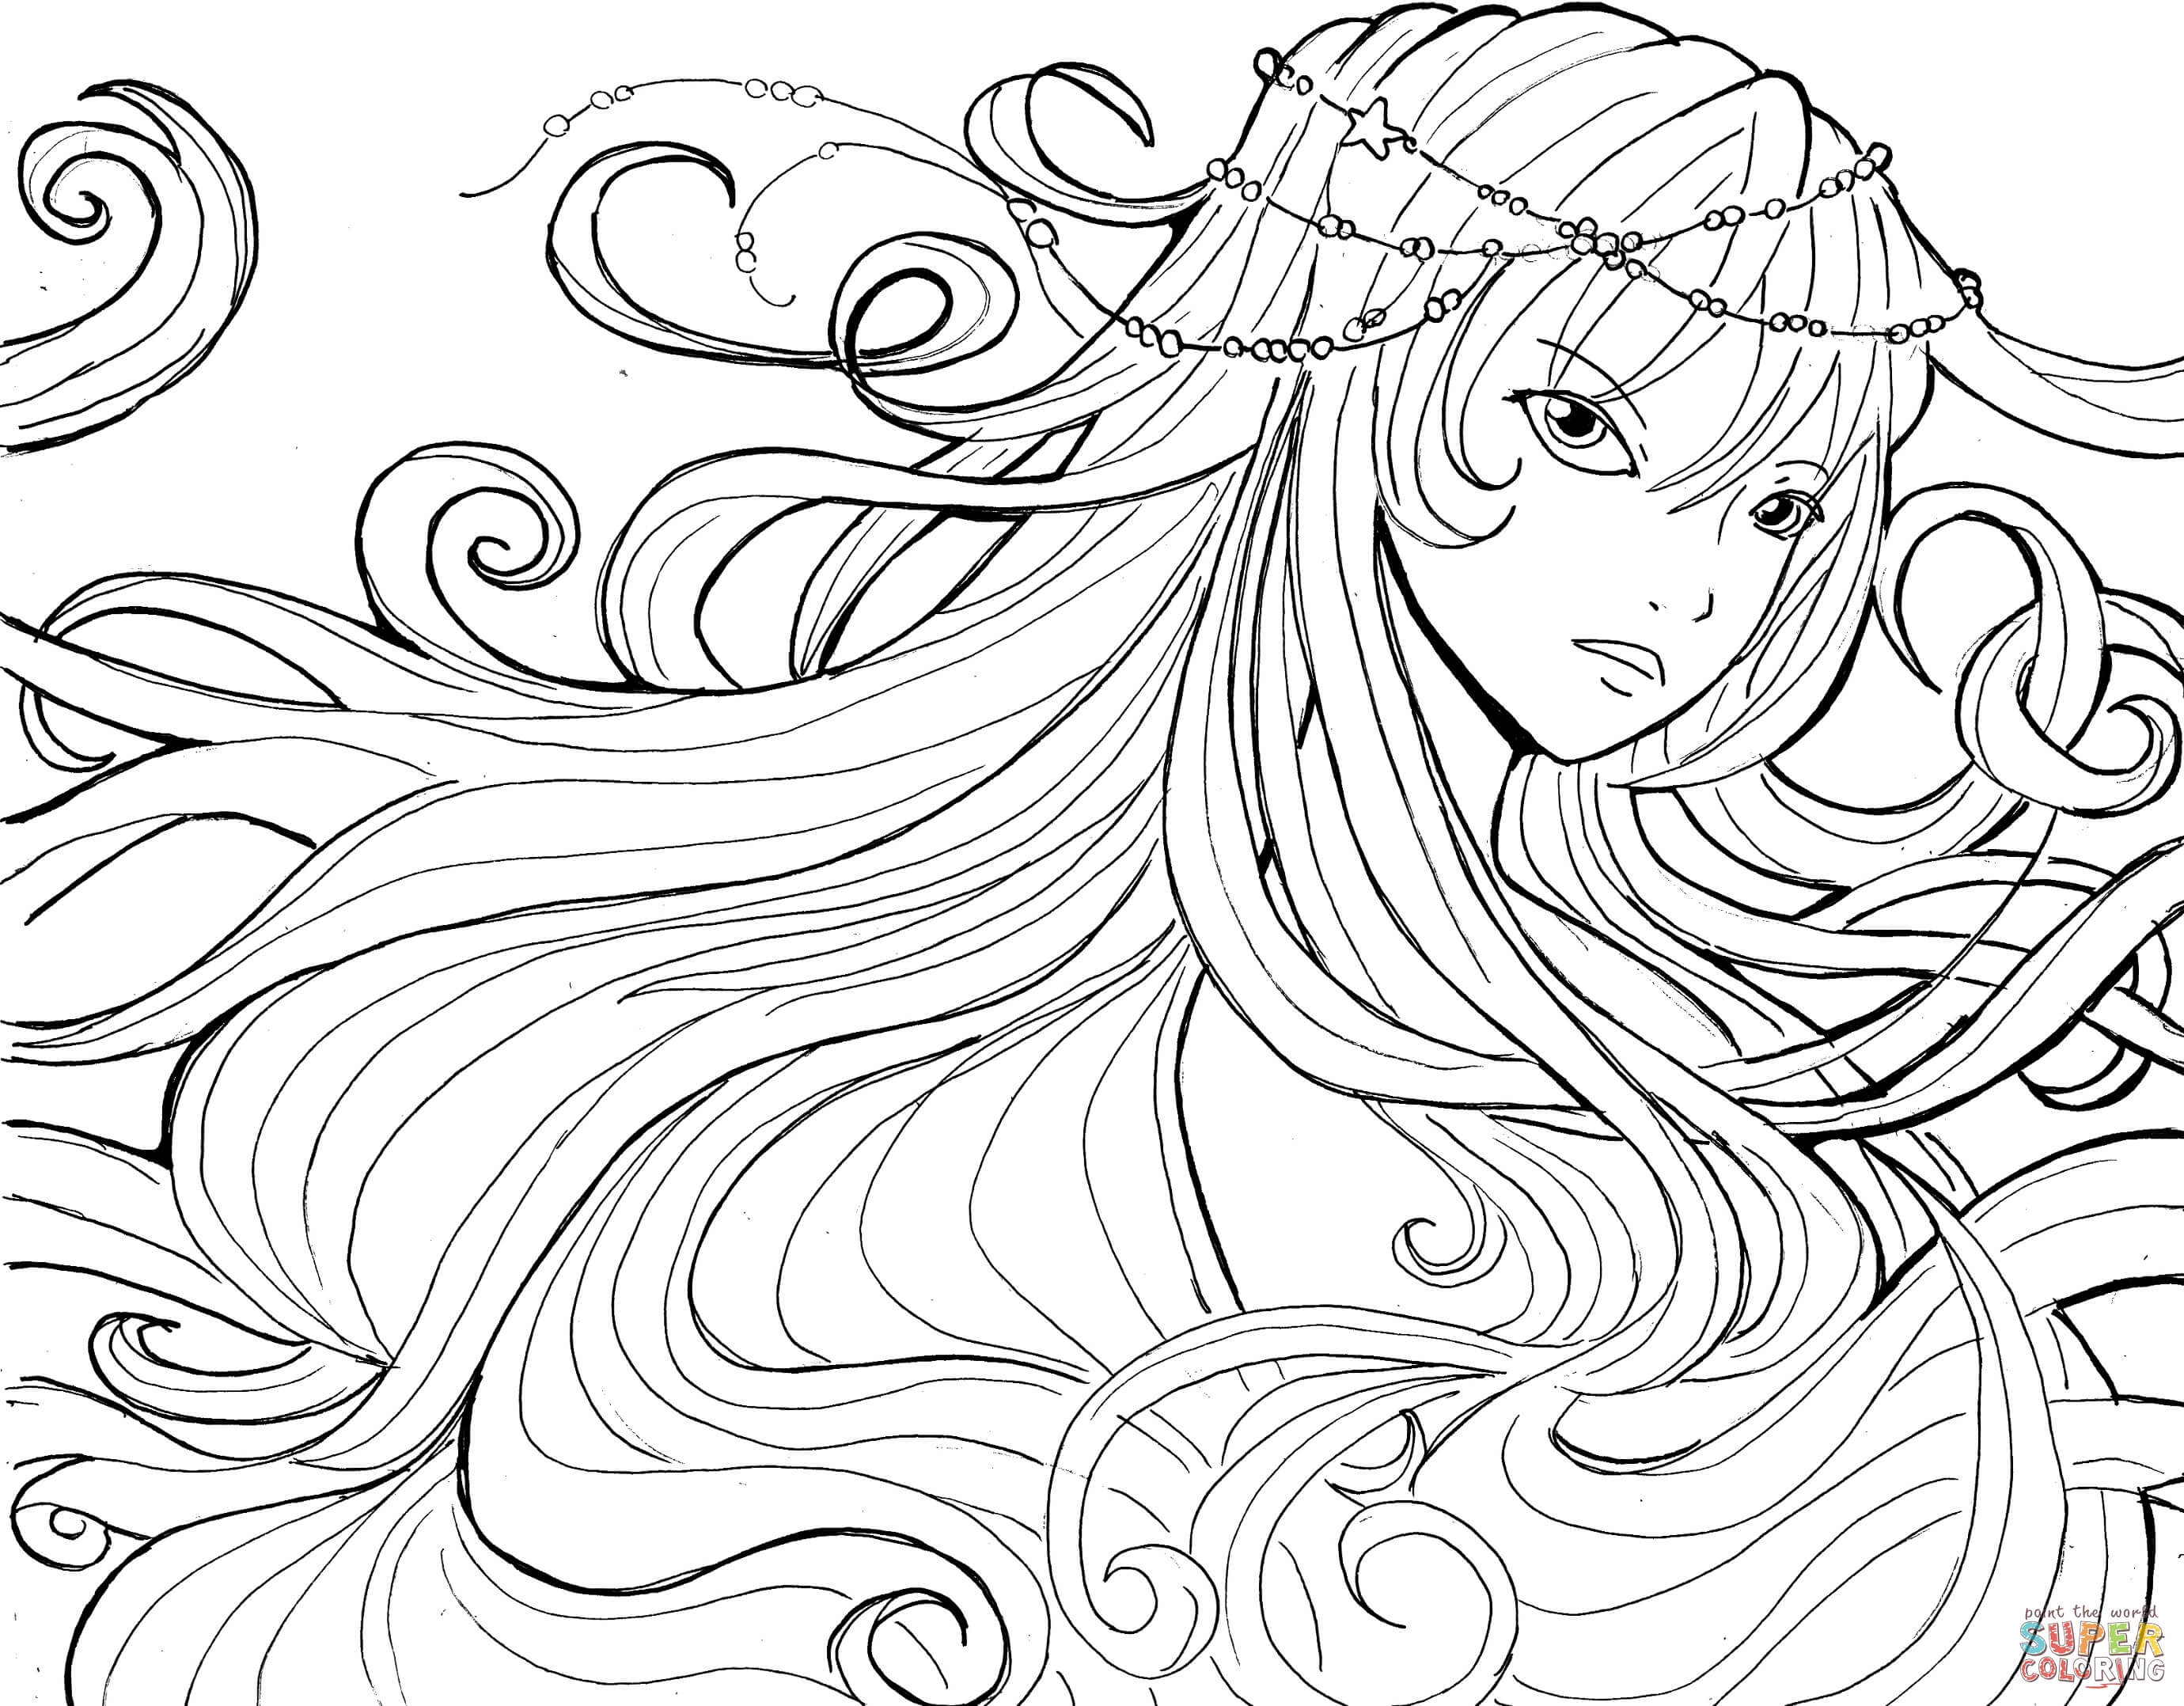 Fantasy Anime Coloring Pages - Coloring Home